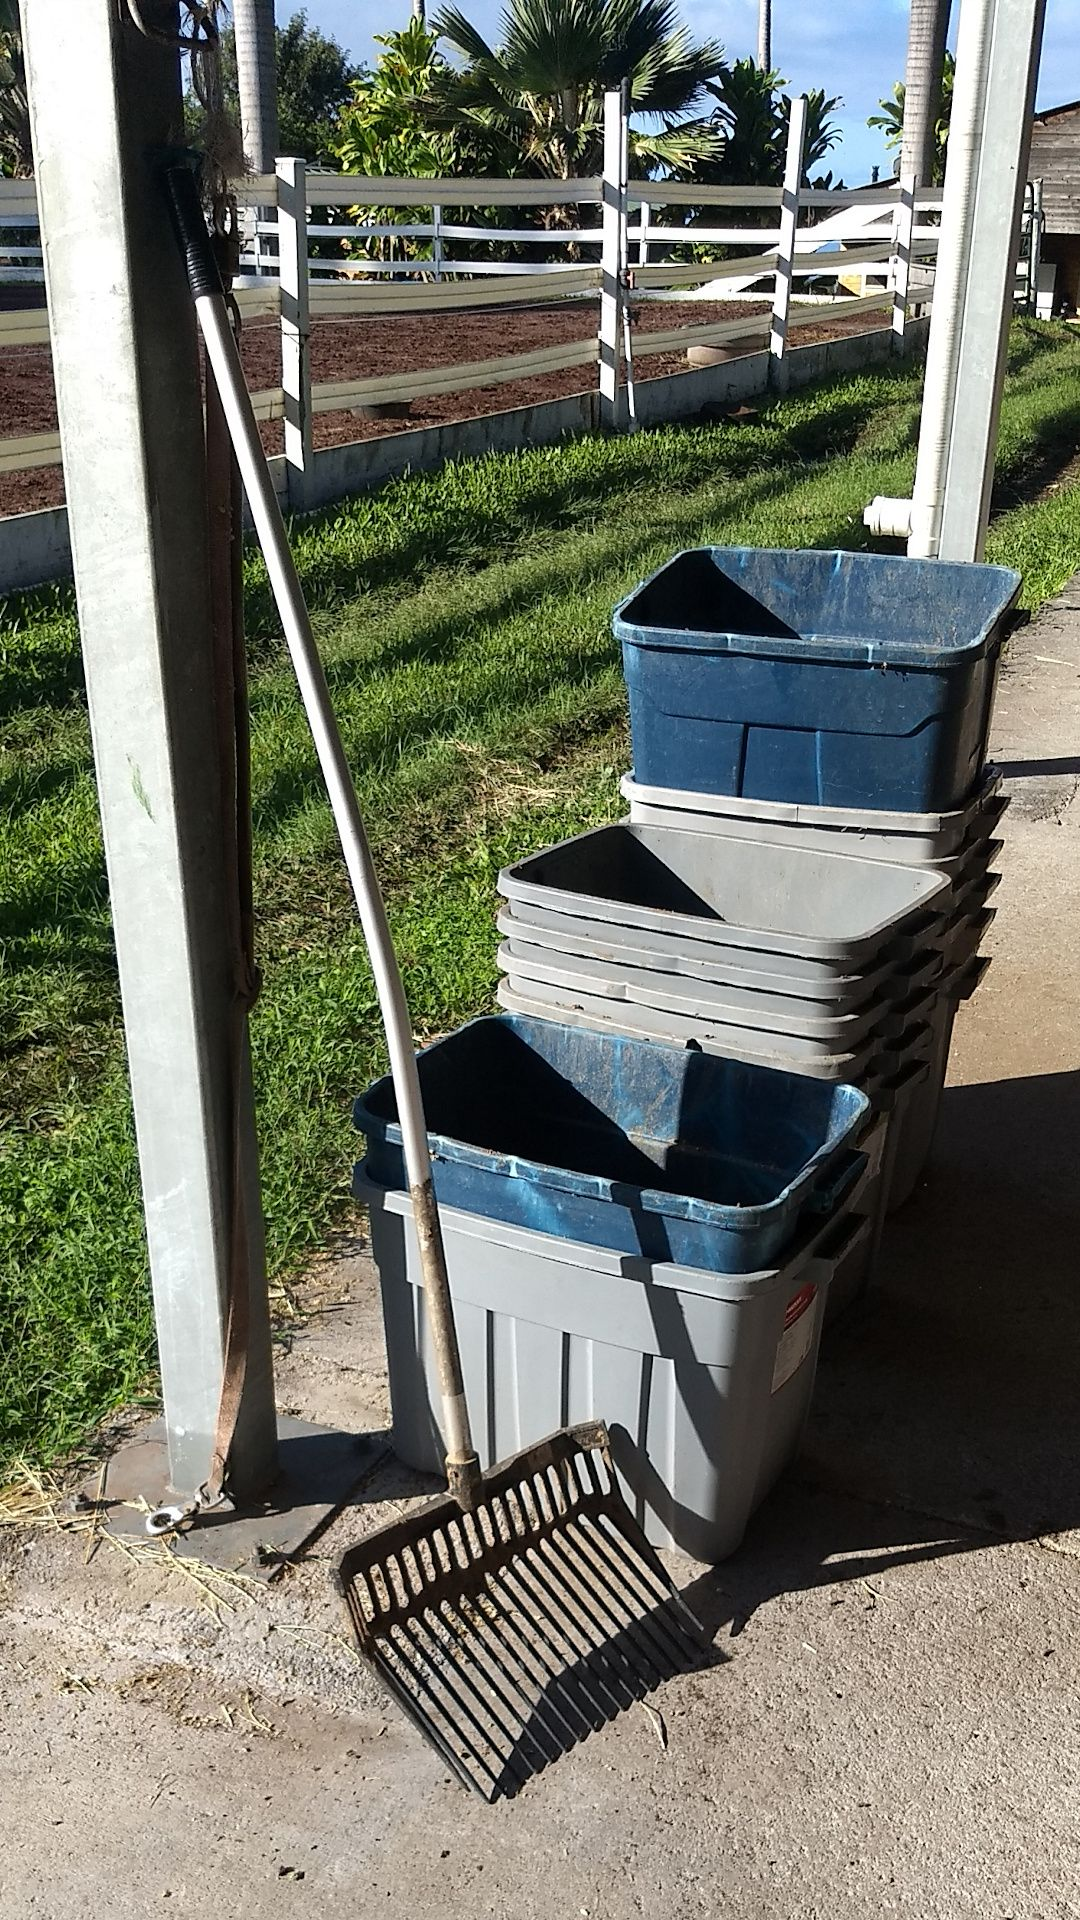 A manure fork in front of a stack of muck buckets.